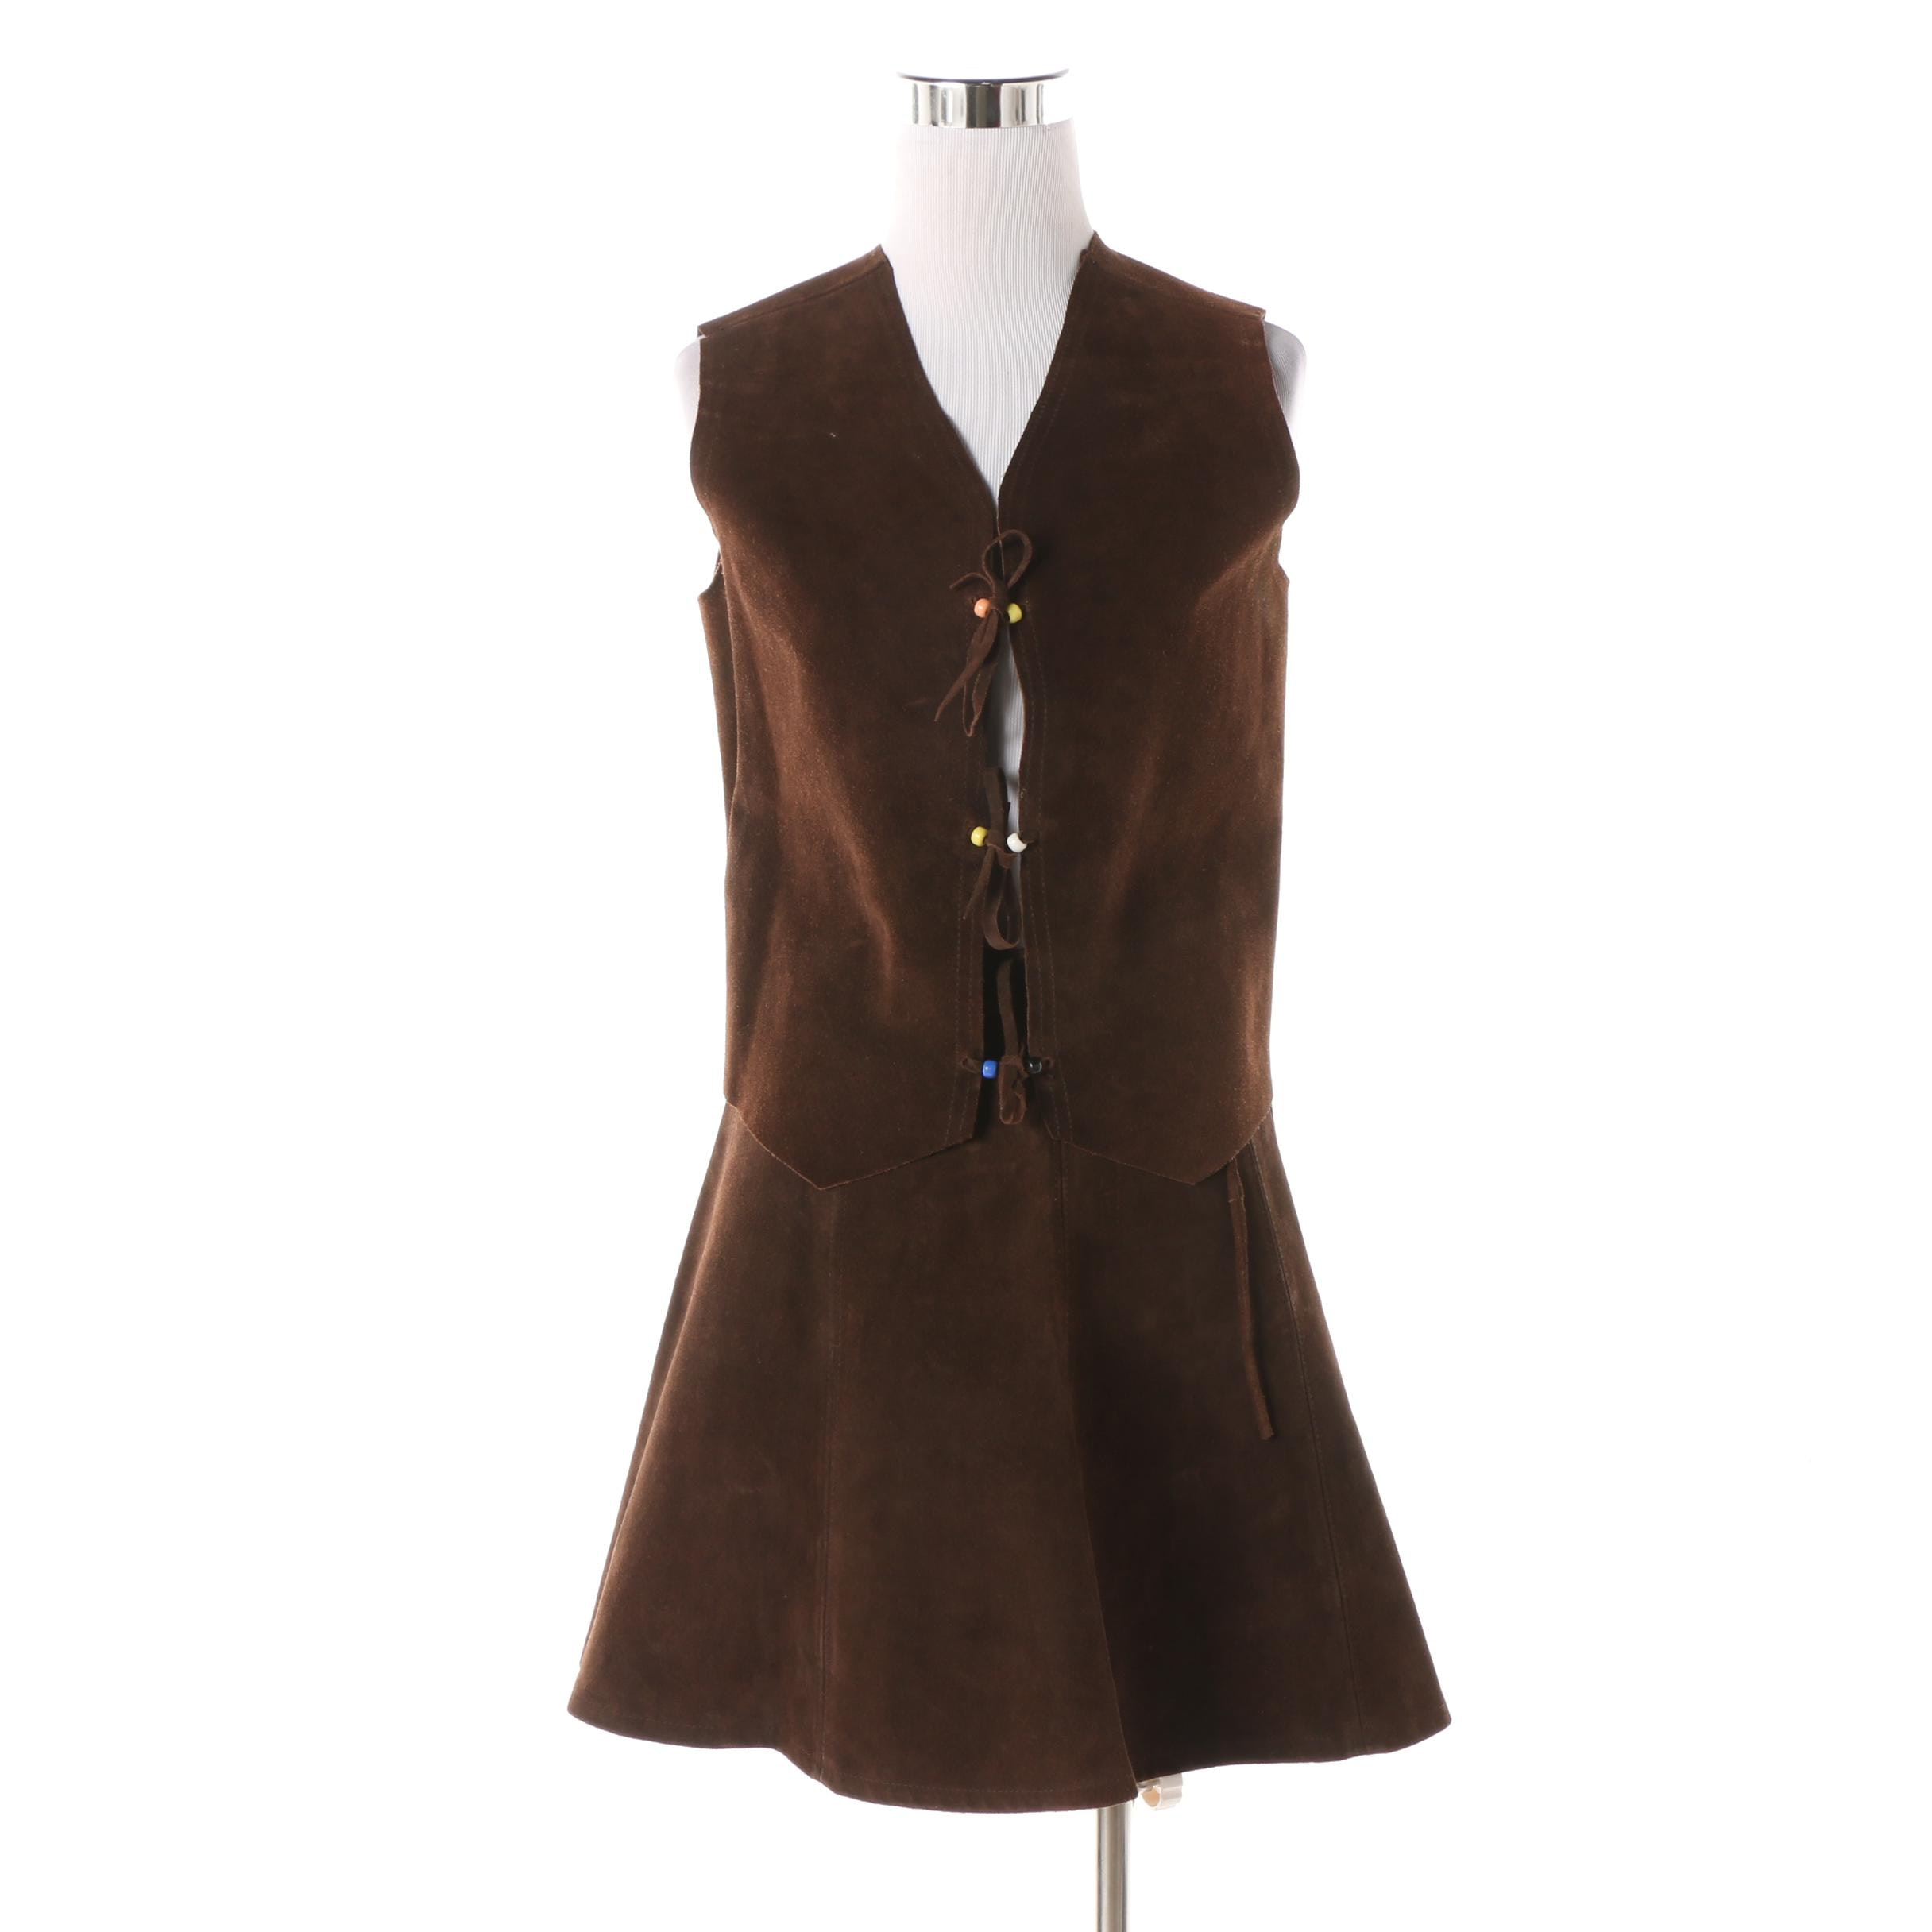 Women's 1970s Vintage Brown Suede Wrap Miniskirt and Vest with Tie Fastenings